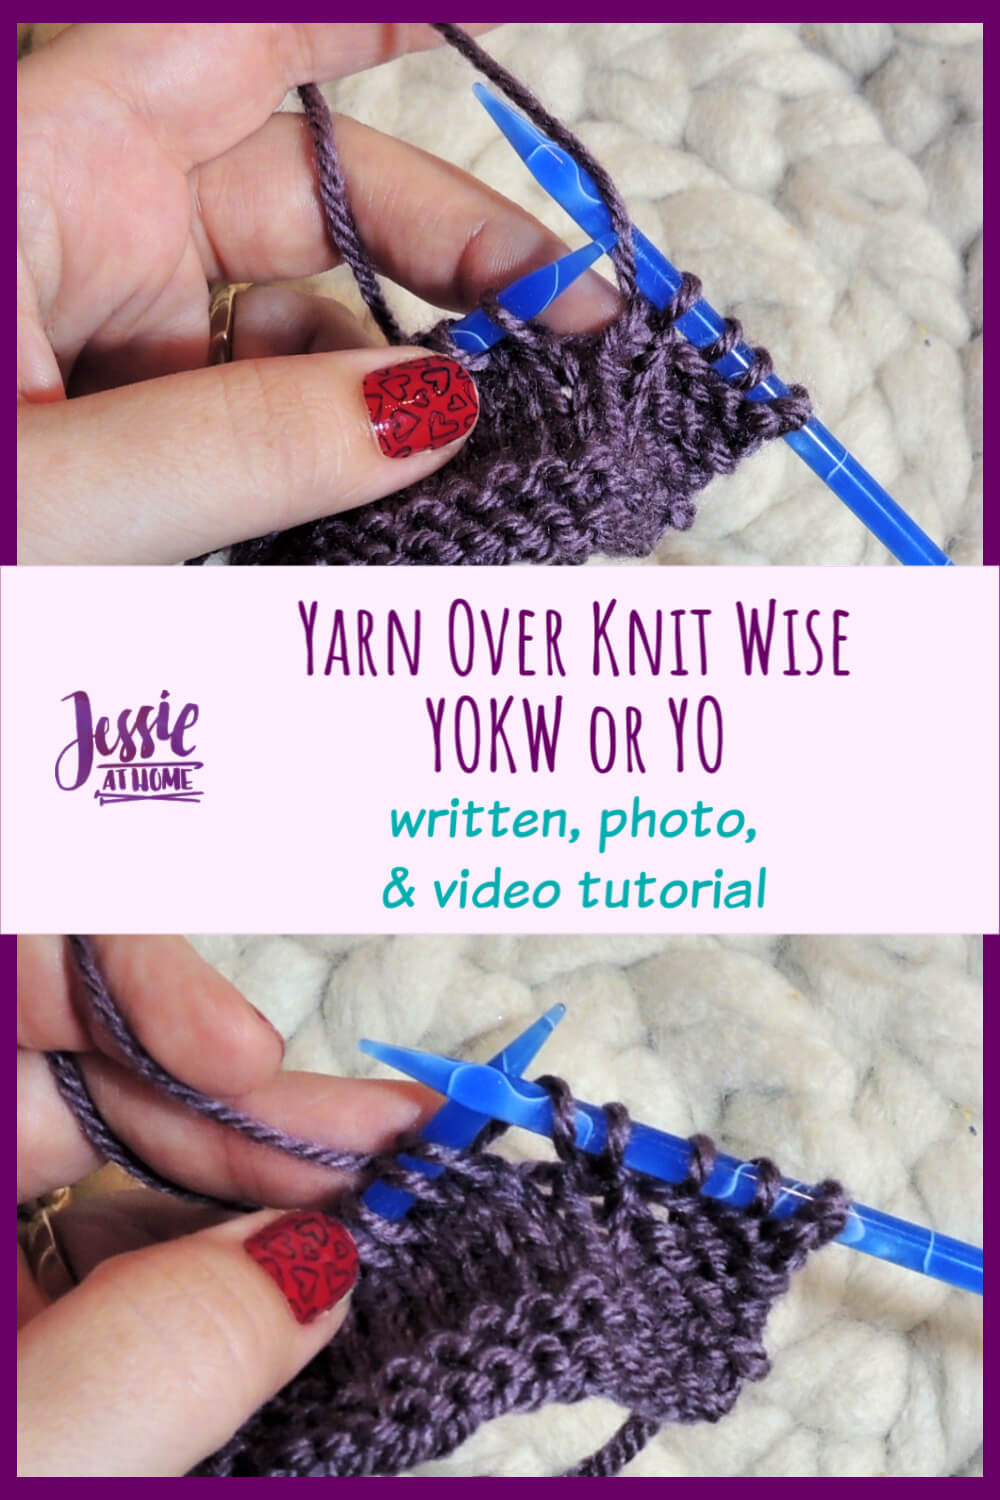 Yarn Over Knit Wise - YOKW or YO - so simple to do!